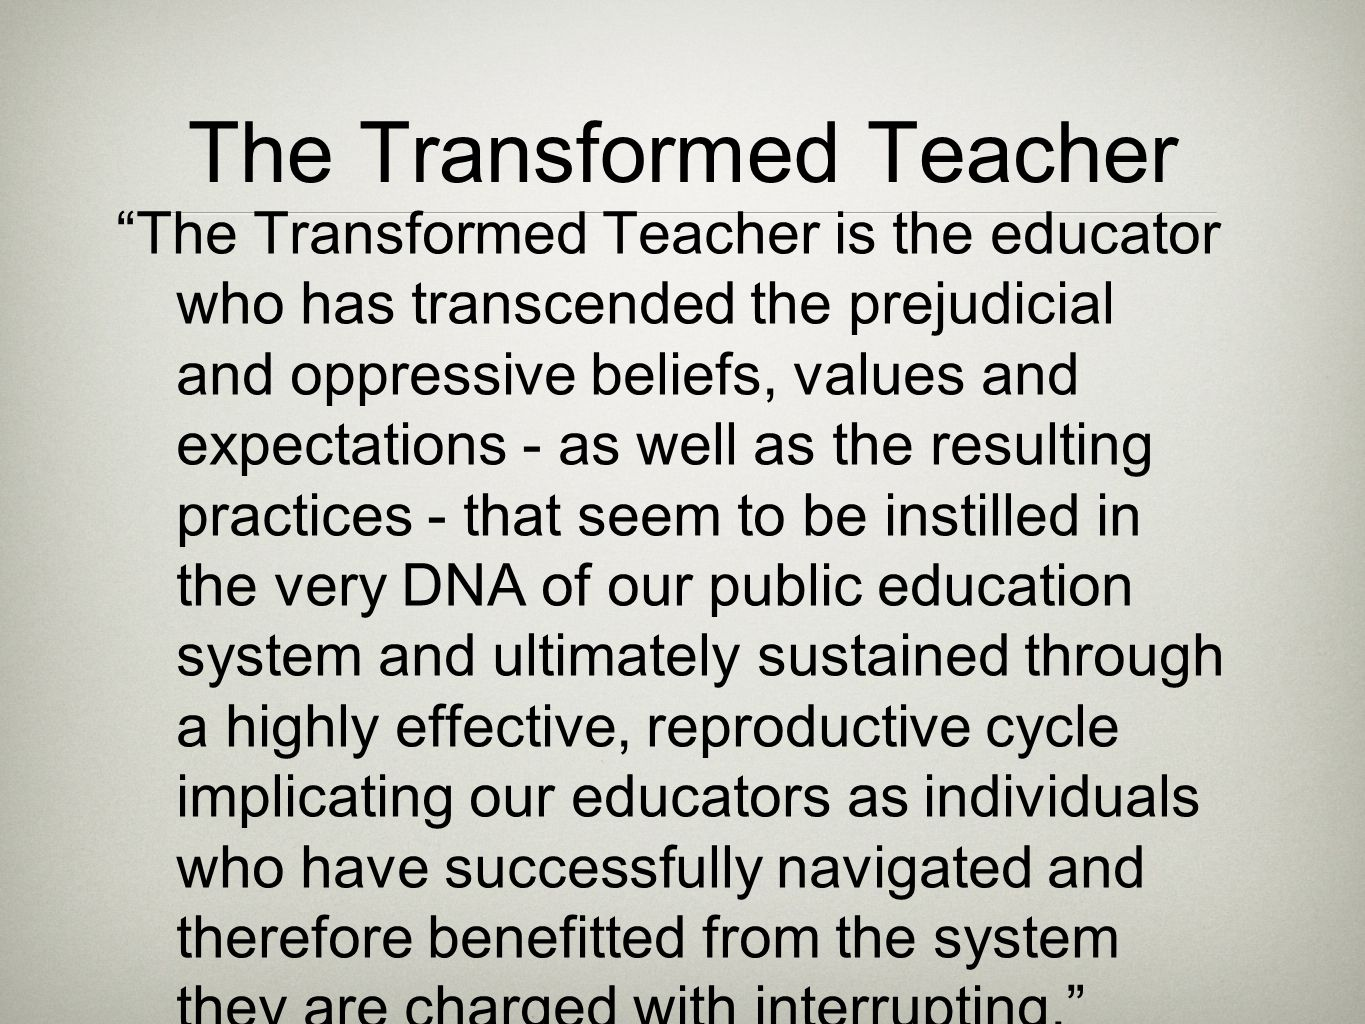 The Transformed Teacher The Transformed Teacher is the educator who has transcended the prejudicial and oppressive beliefs, values and expectations - as well as the resulting practices - that seem to be instilled in the very DNA of our public education system and ultimately sustained through a highly effective, reproductive cycle implicating our educators as individuals who have successfully navigated and therefore benefitted from the system they are charged with interrupting.